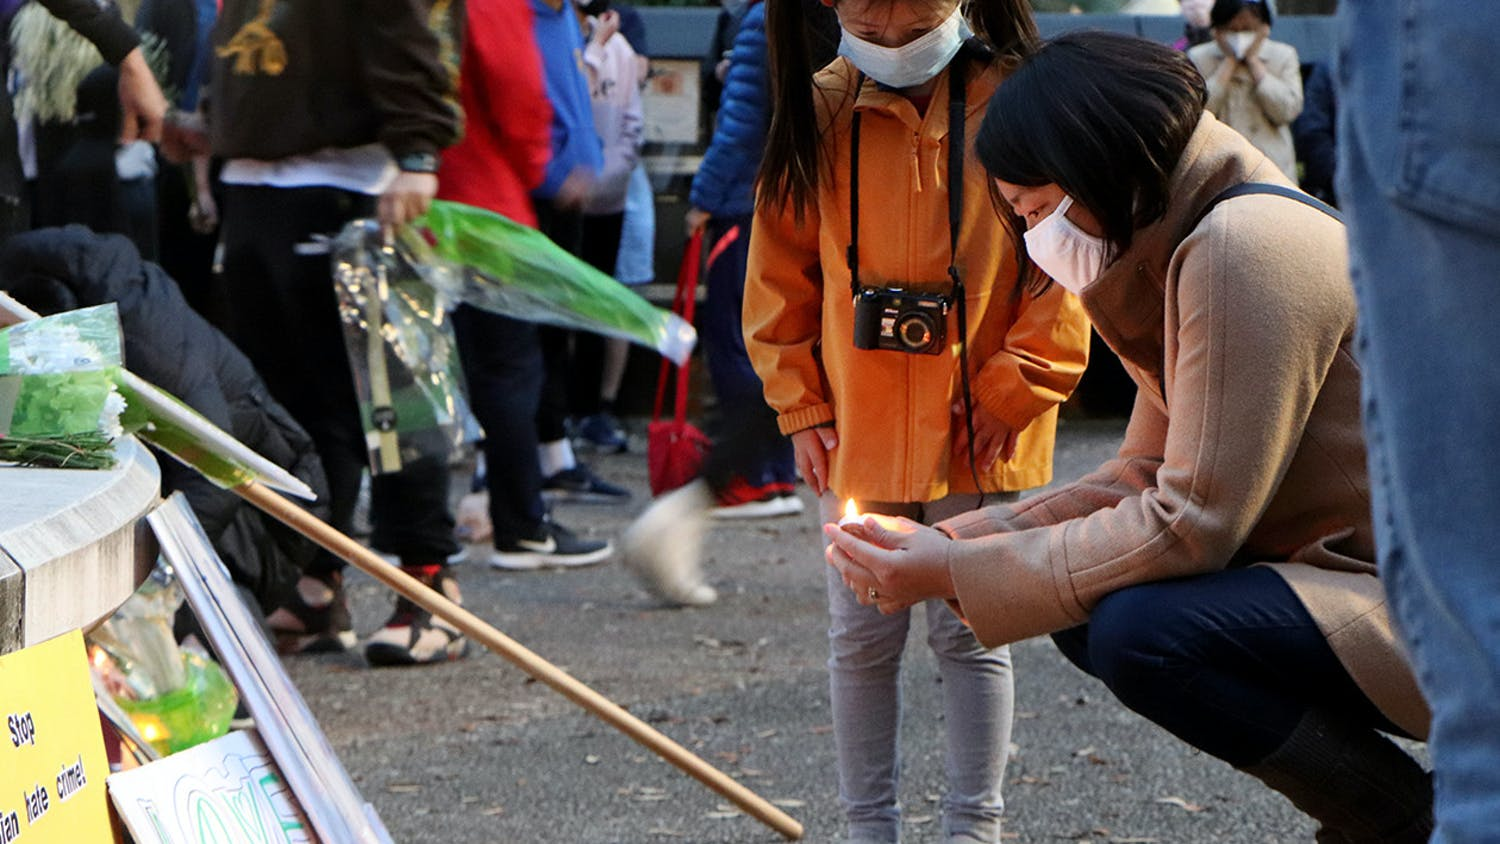 Iris Wang, 6, (left) watches Minmin Jin, 43, a Gainesville resident (right), light a candle in front of Turlington Plaza Saturday, March 20, 2021. The two stood with a large crowd commemorating the tragedy in Atlanta and calling attention to racism against Asian Americans.